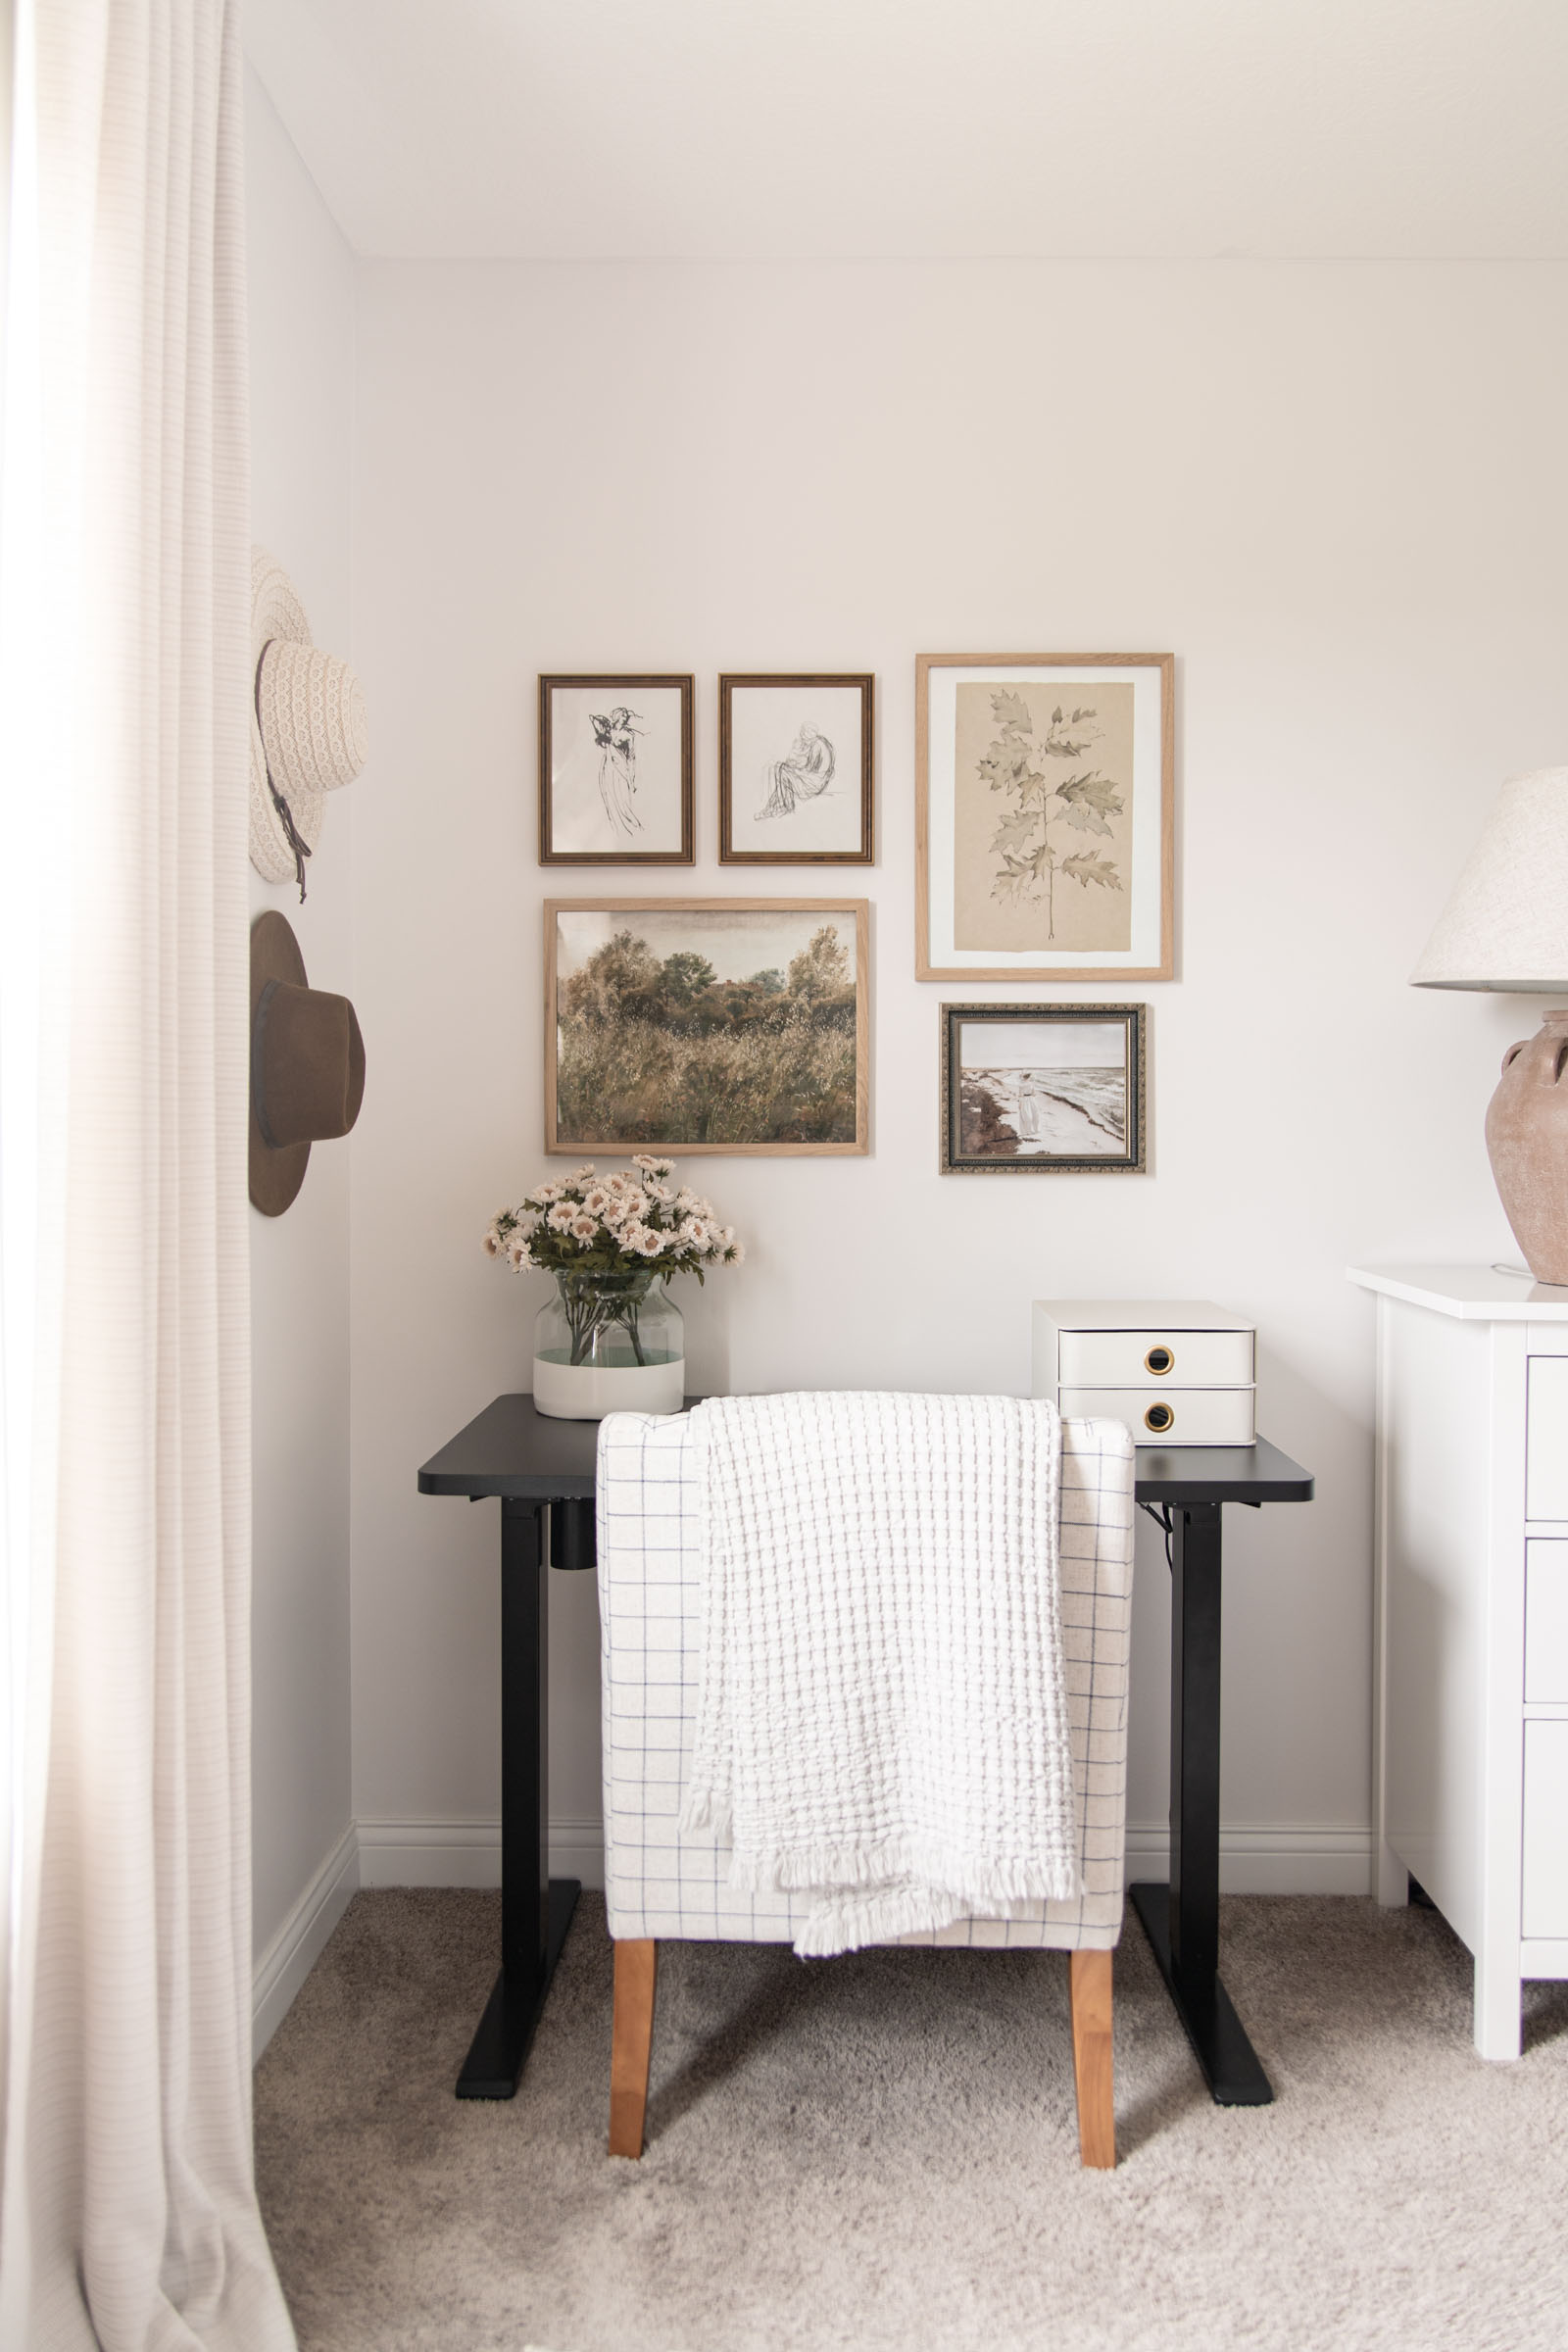 Bedroom Office Nook (and Vintage Art Gallery Wall) | black sit to stand electric standing desk, hats hanging on wall, poetto vase, collected antique art gallery wall, windowpane plaid chair